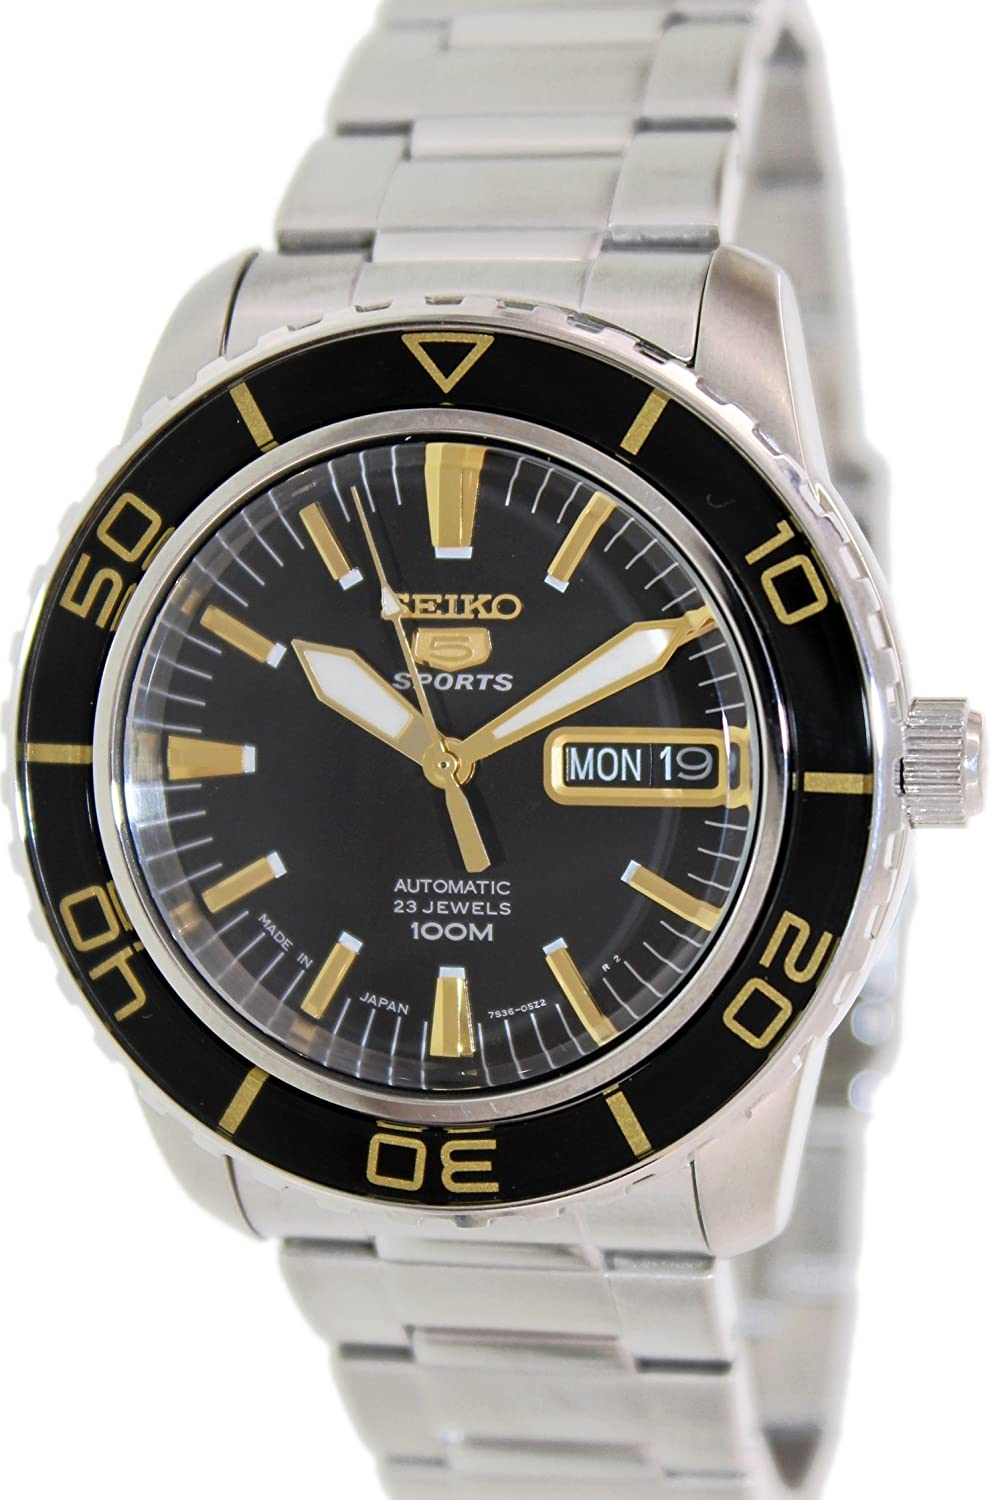 74f295df2cb Amazon.com  Seiko 5 Sports Automatic Black Dial Stainless Steel Mens Watch  SNZH57J1 by Seiko Watches  Seiko  Watches